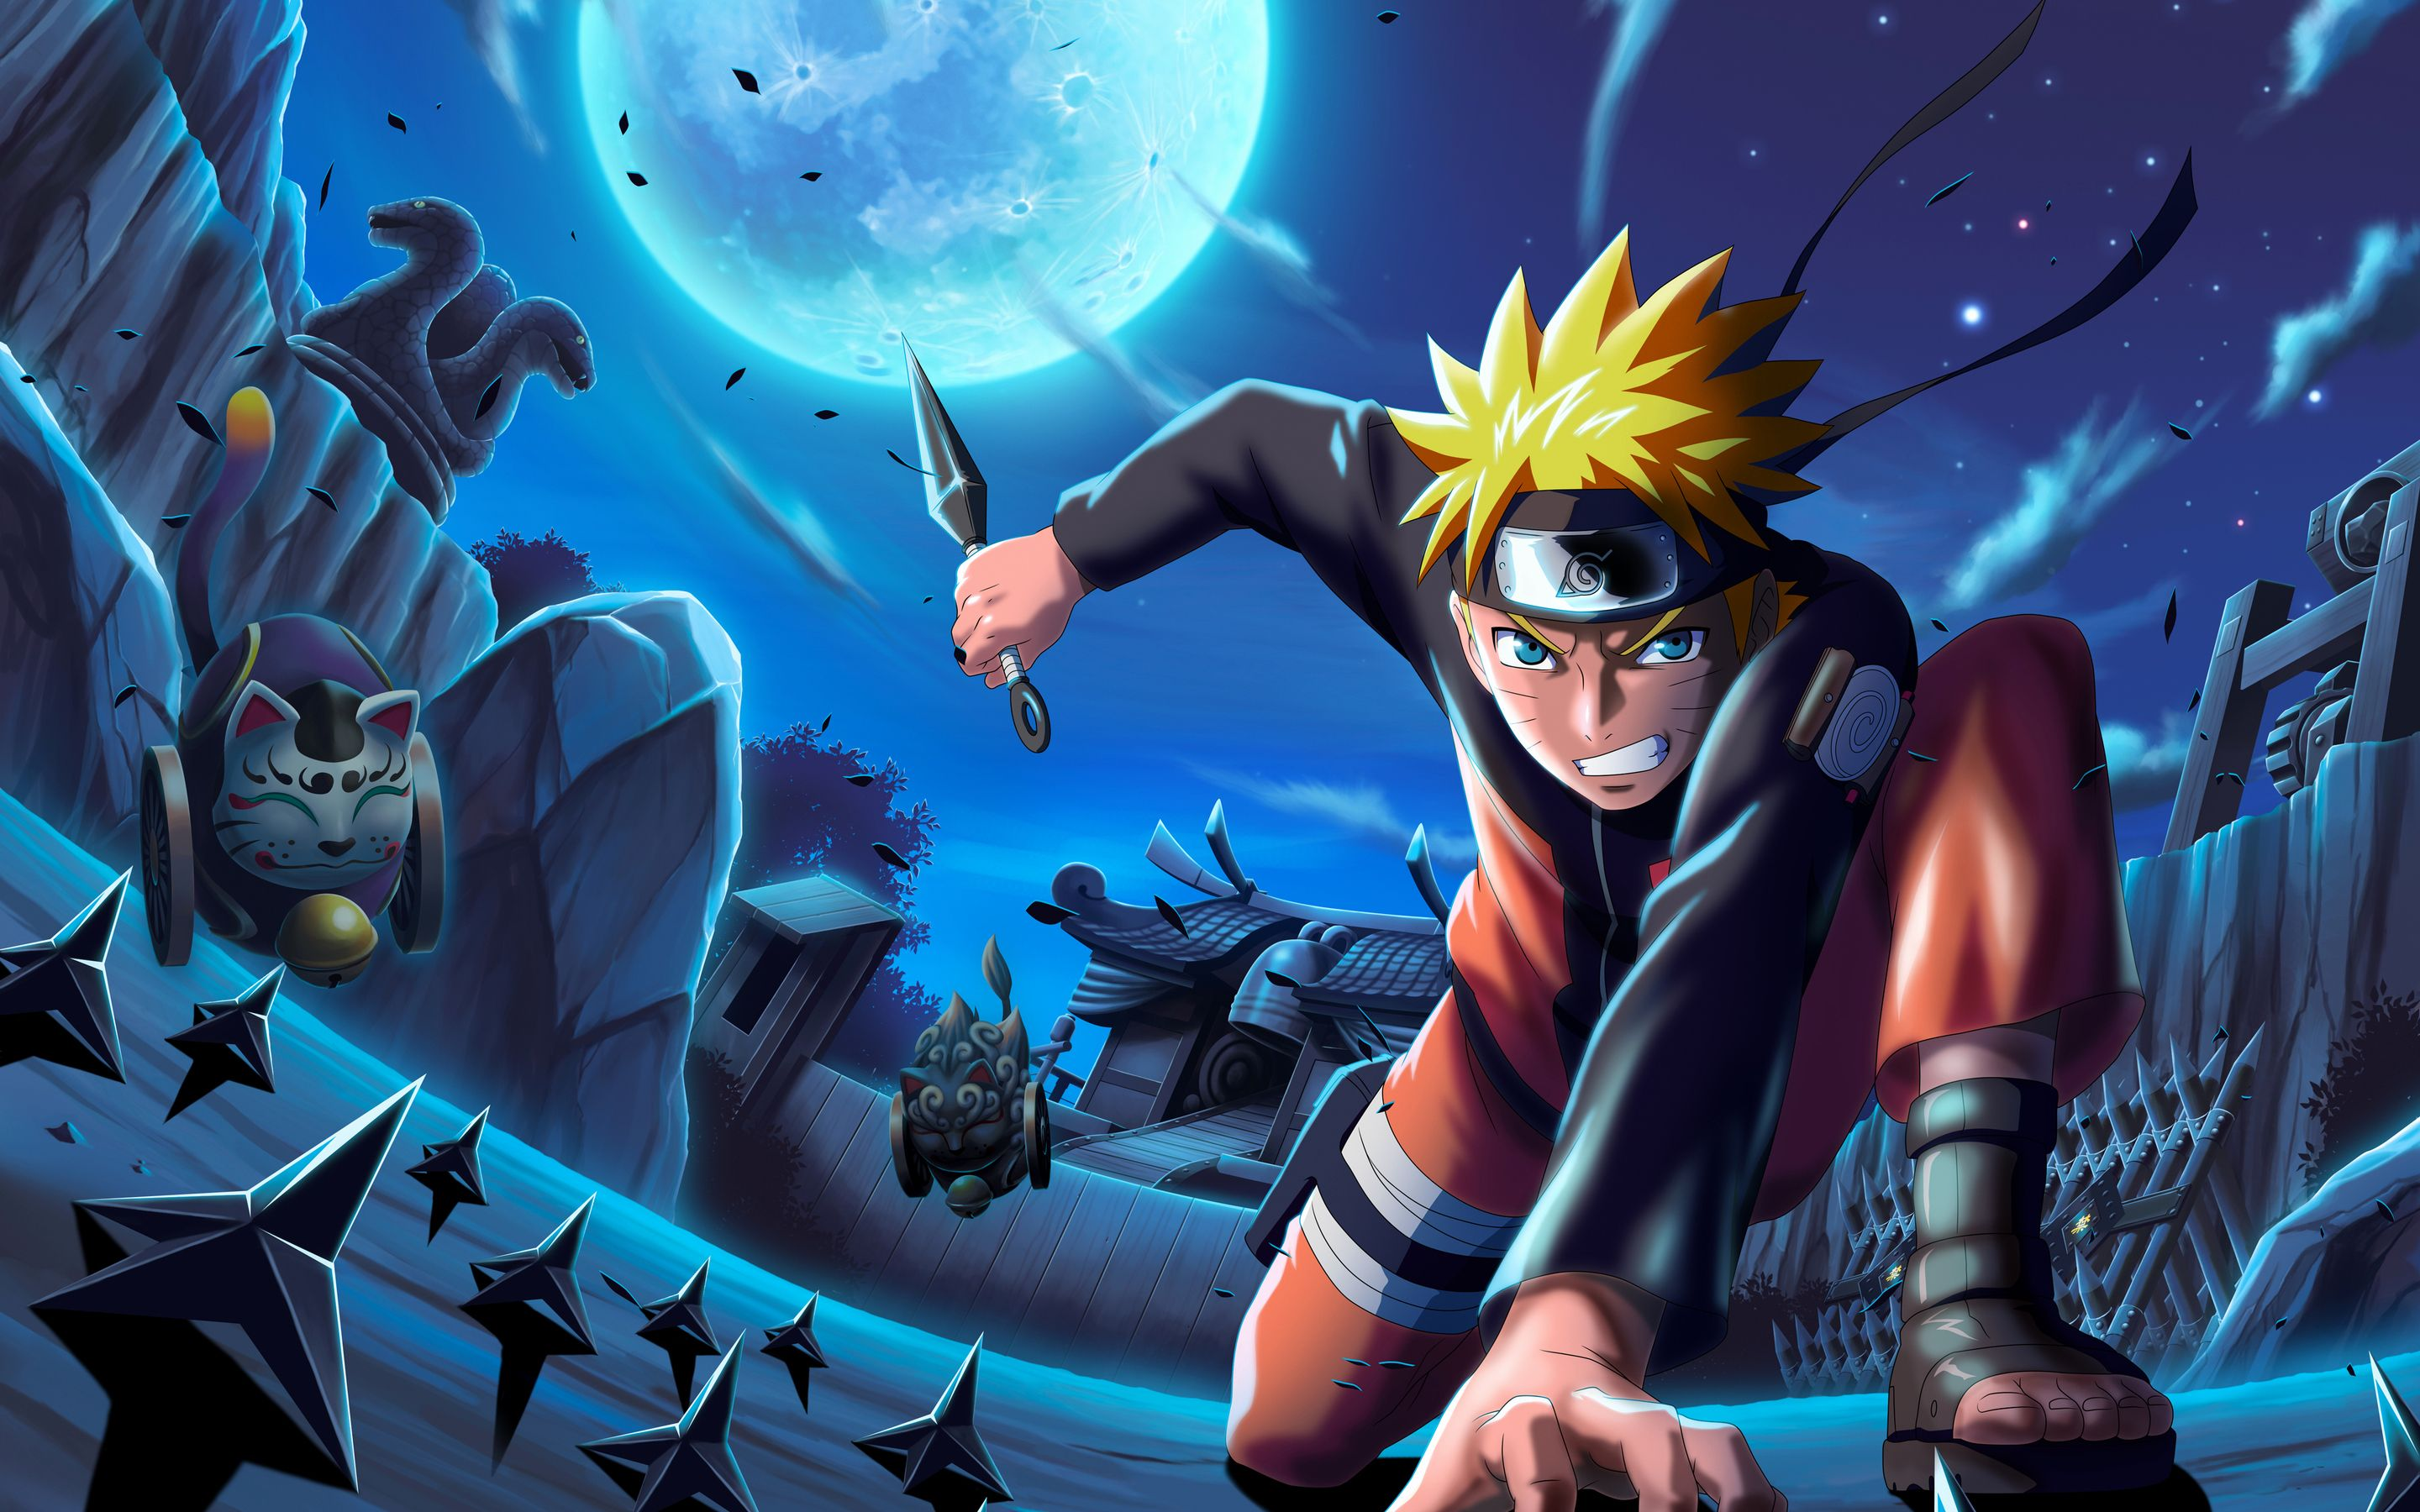 Naruto Macbook Pro Wallpapers Top Free Naruto Macbook Pro Backgrounds Wallpaperaccess